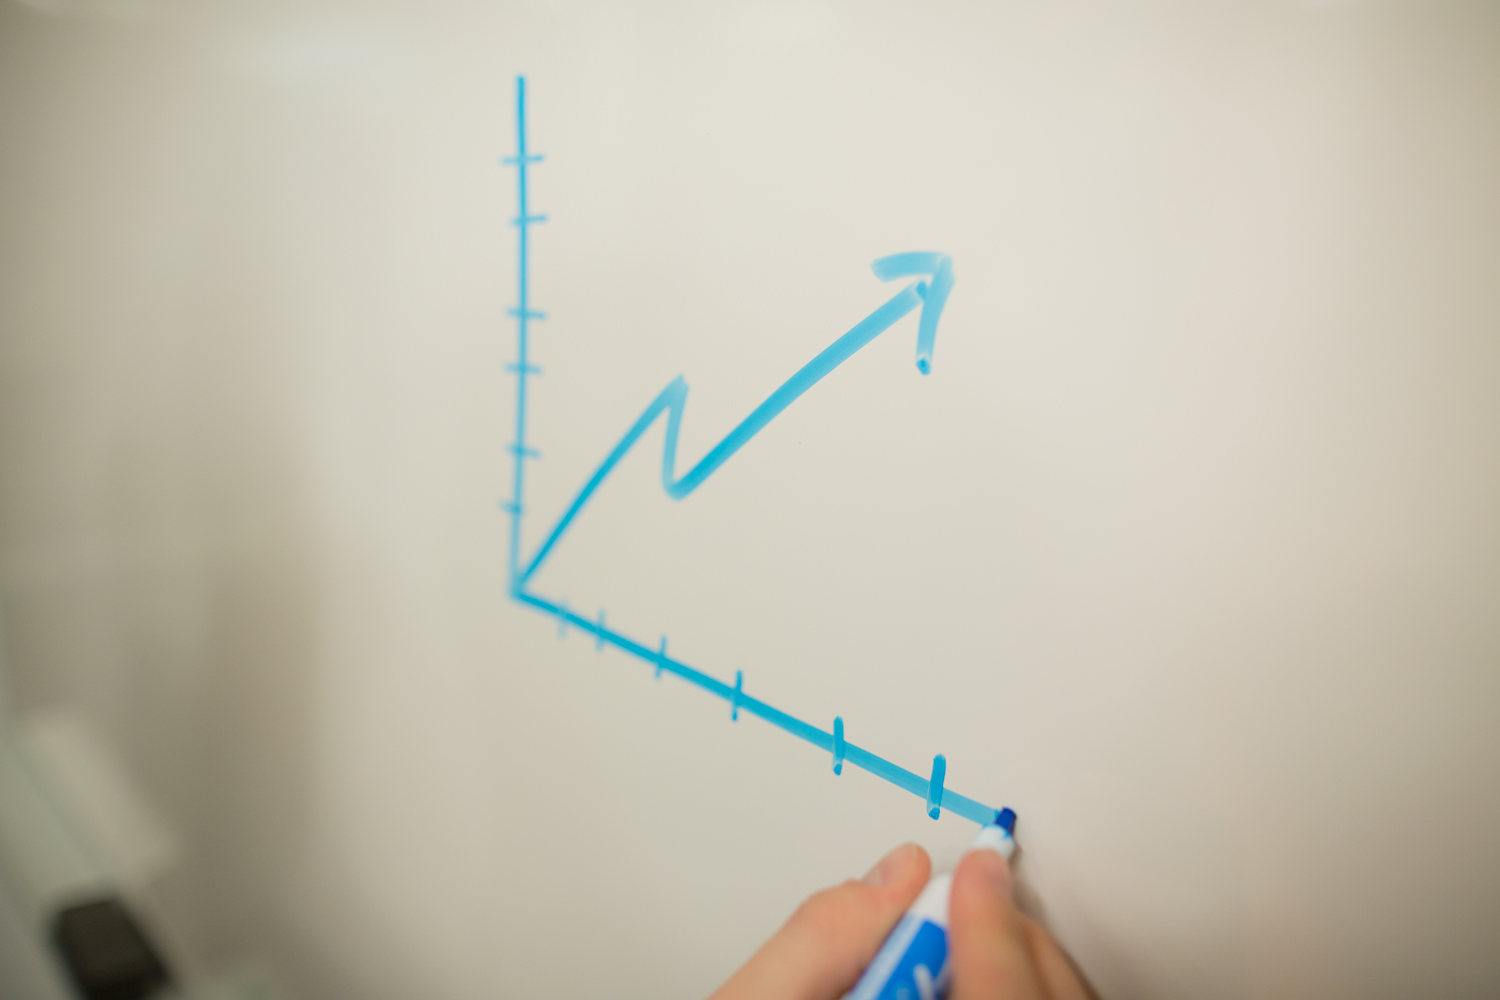 whiteboard-graph.jpg